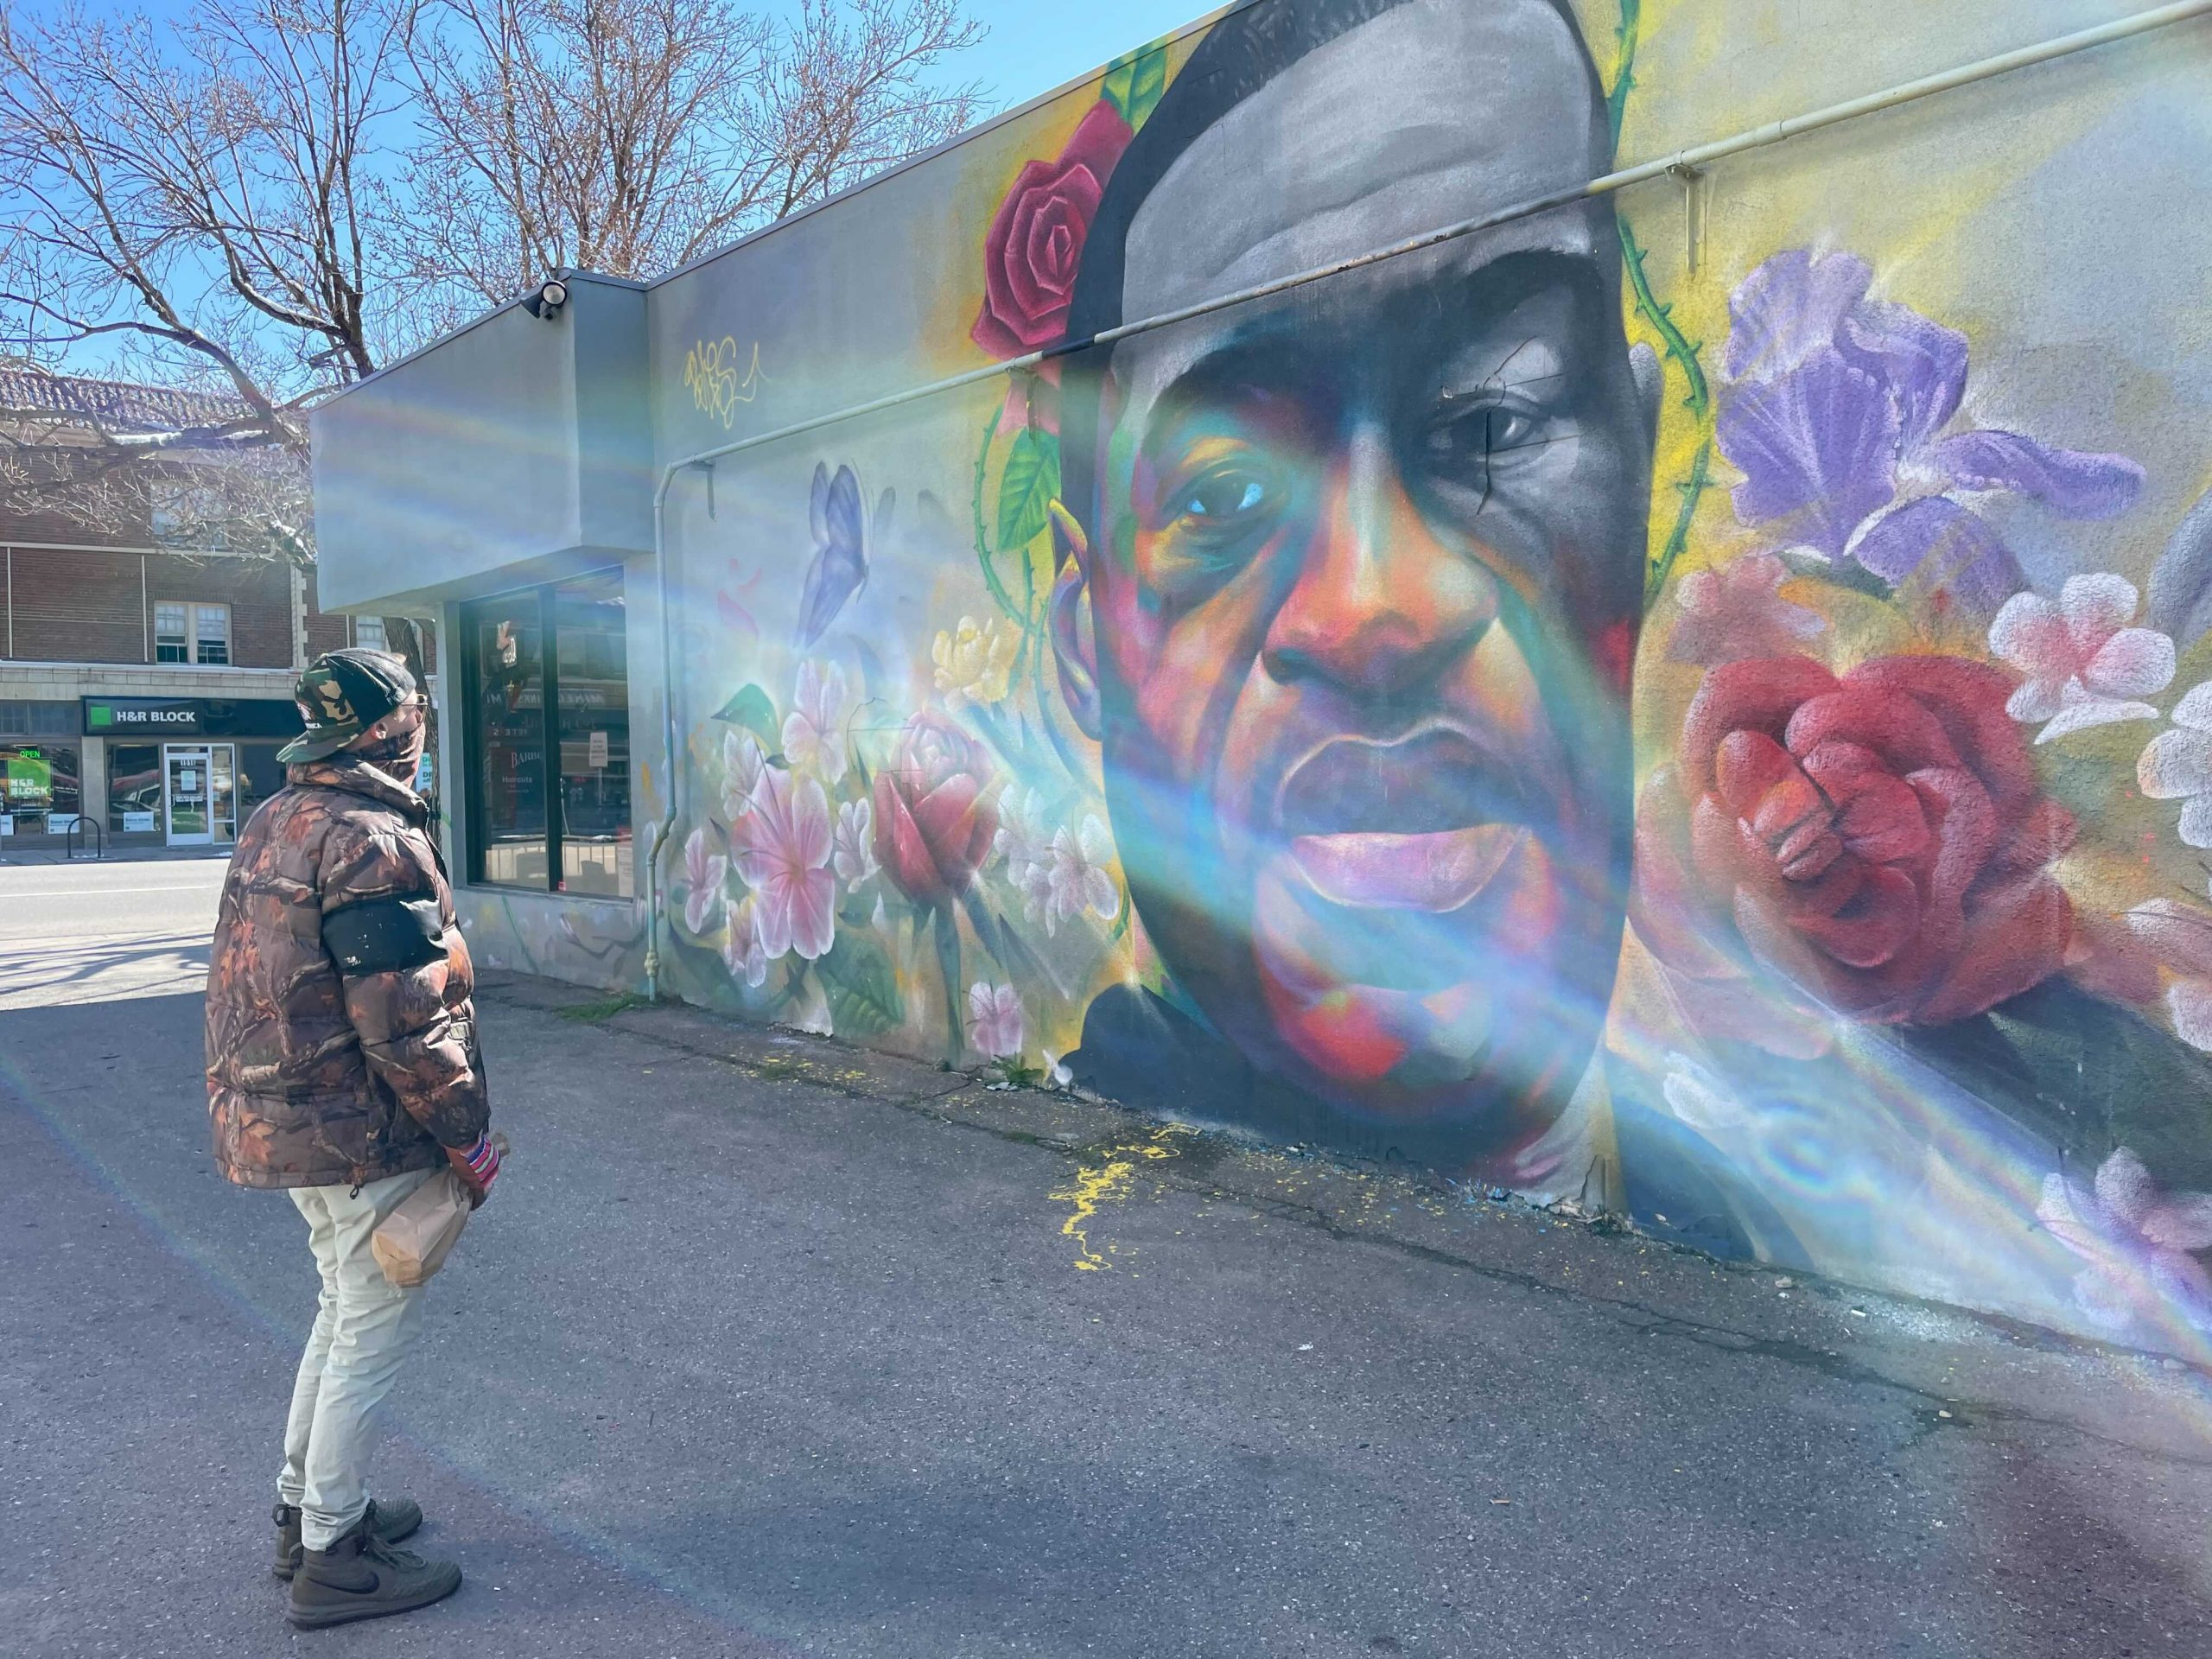 Colin Early stops by the George Floyd mural on Colfax Ave. near downtown Denver after hearing that Minneapolis police officer Derek Chauvin was found guilty on three counts of murder in the 2020 killing of George Floyd.